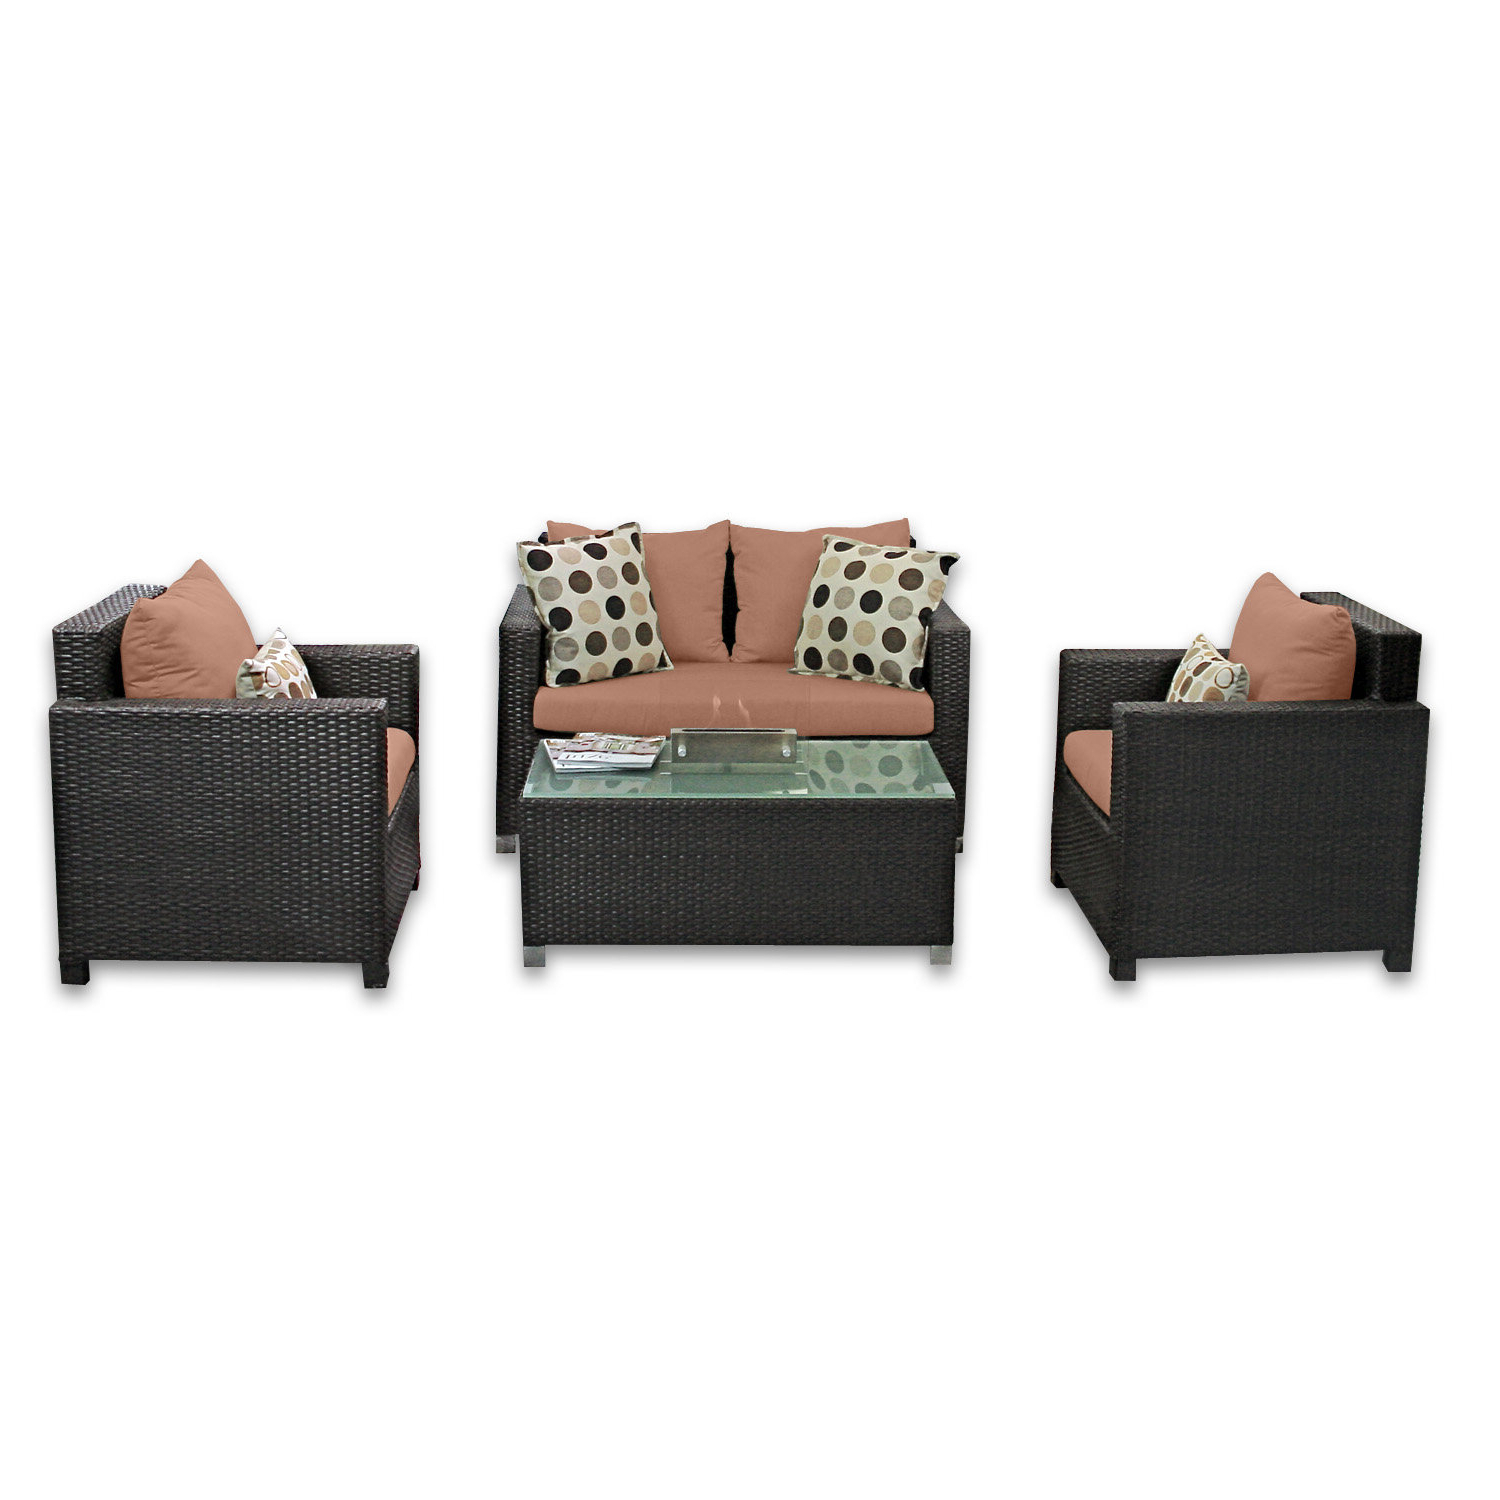 Widely Used Skye Venice 4 Piece Sunbrella Sofa Set With Cushions For 4 Piece Sierra Sunbrella Seating Group (View 22 of 25)